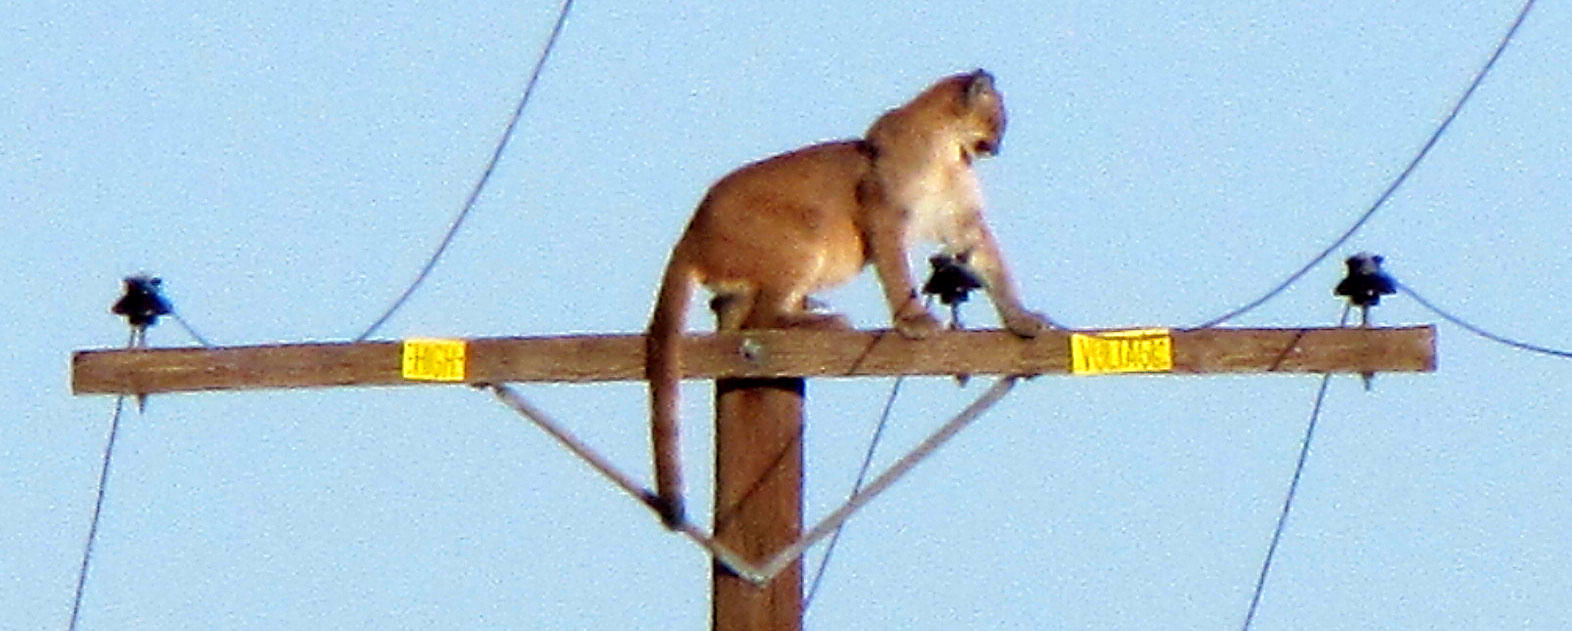 Mountain lion atop light pole